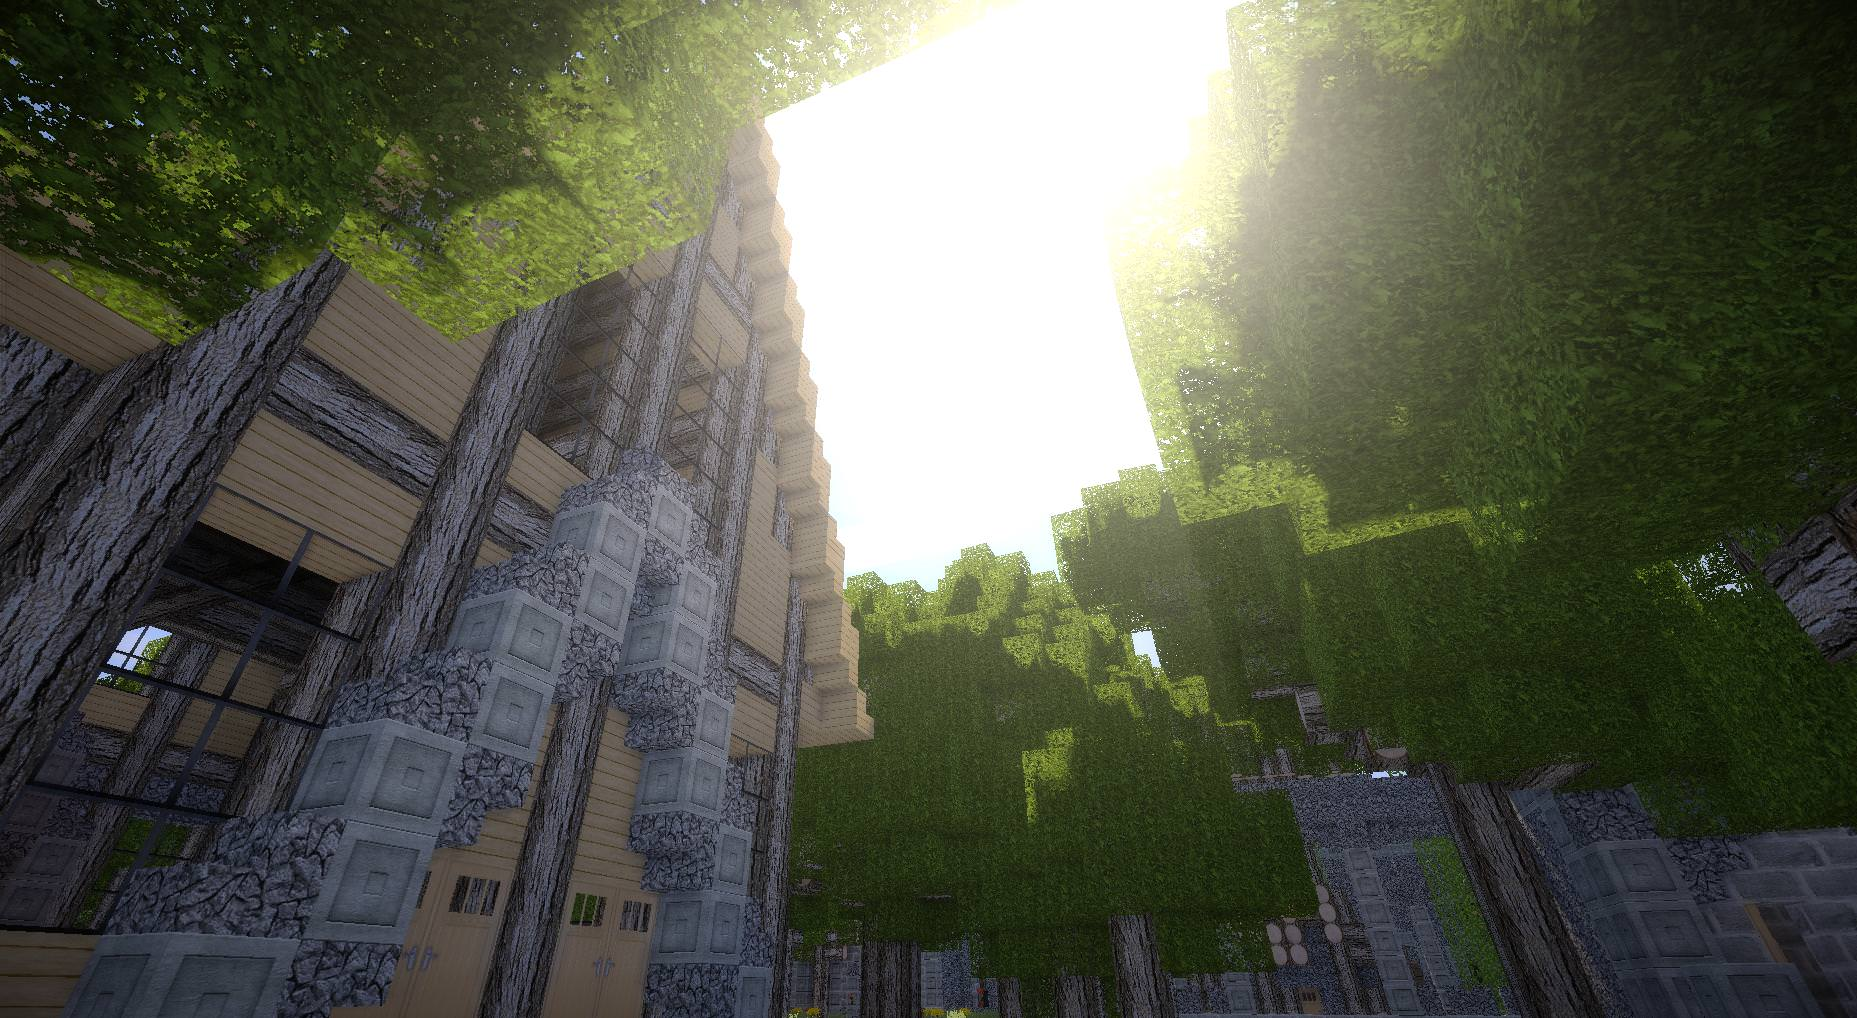 29+ Realistic Minecraft Textures, Patterns, Backgrounds ...